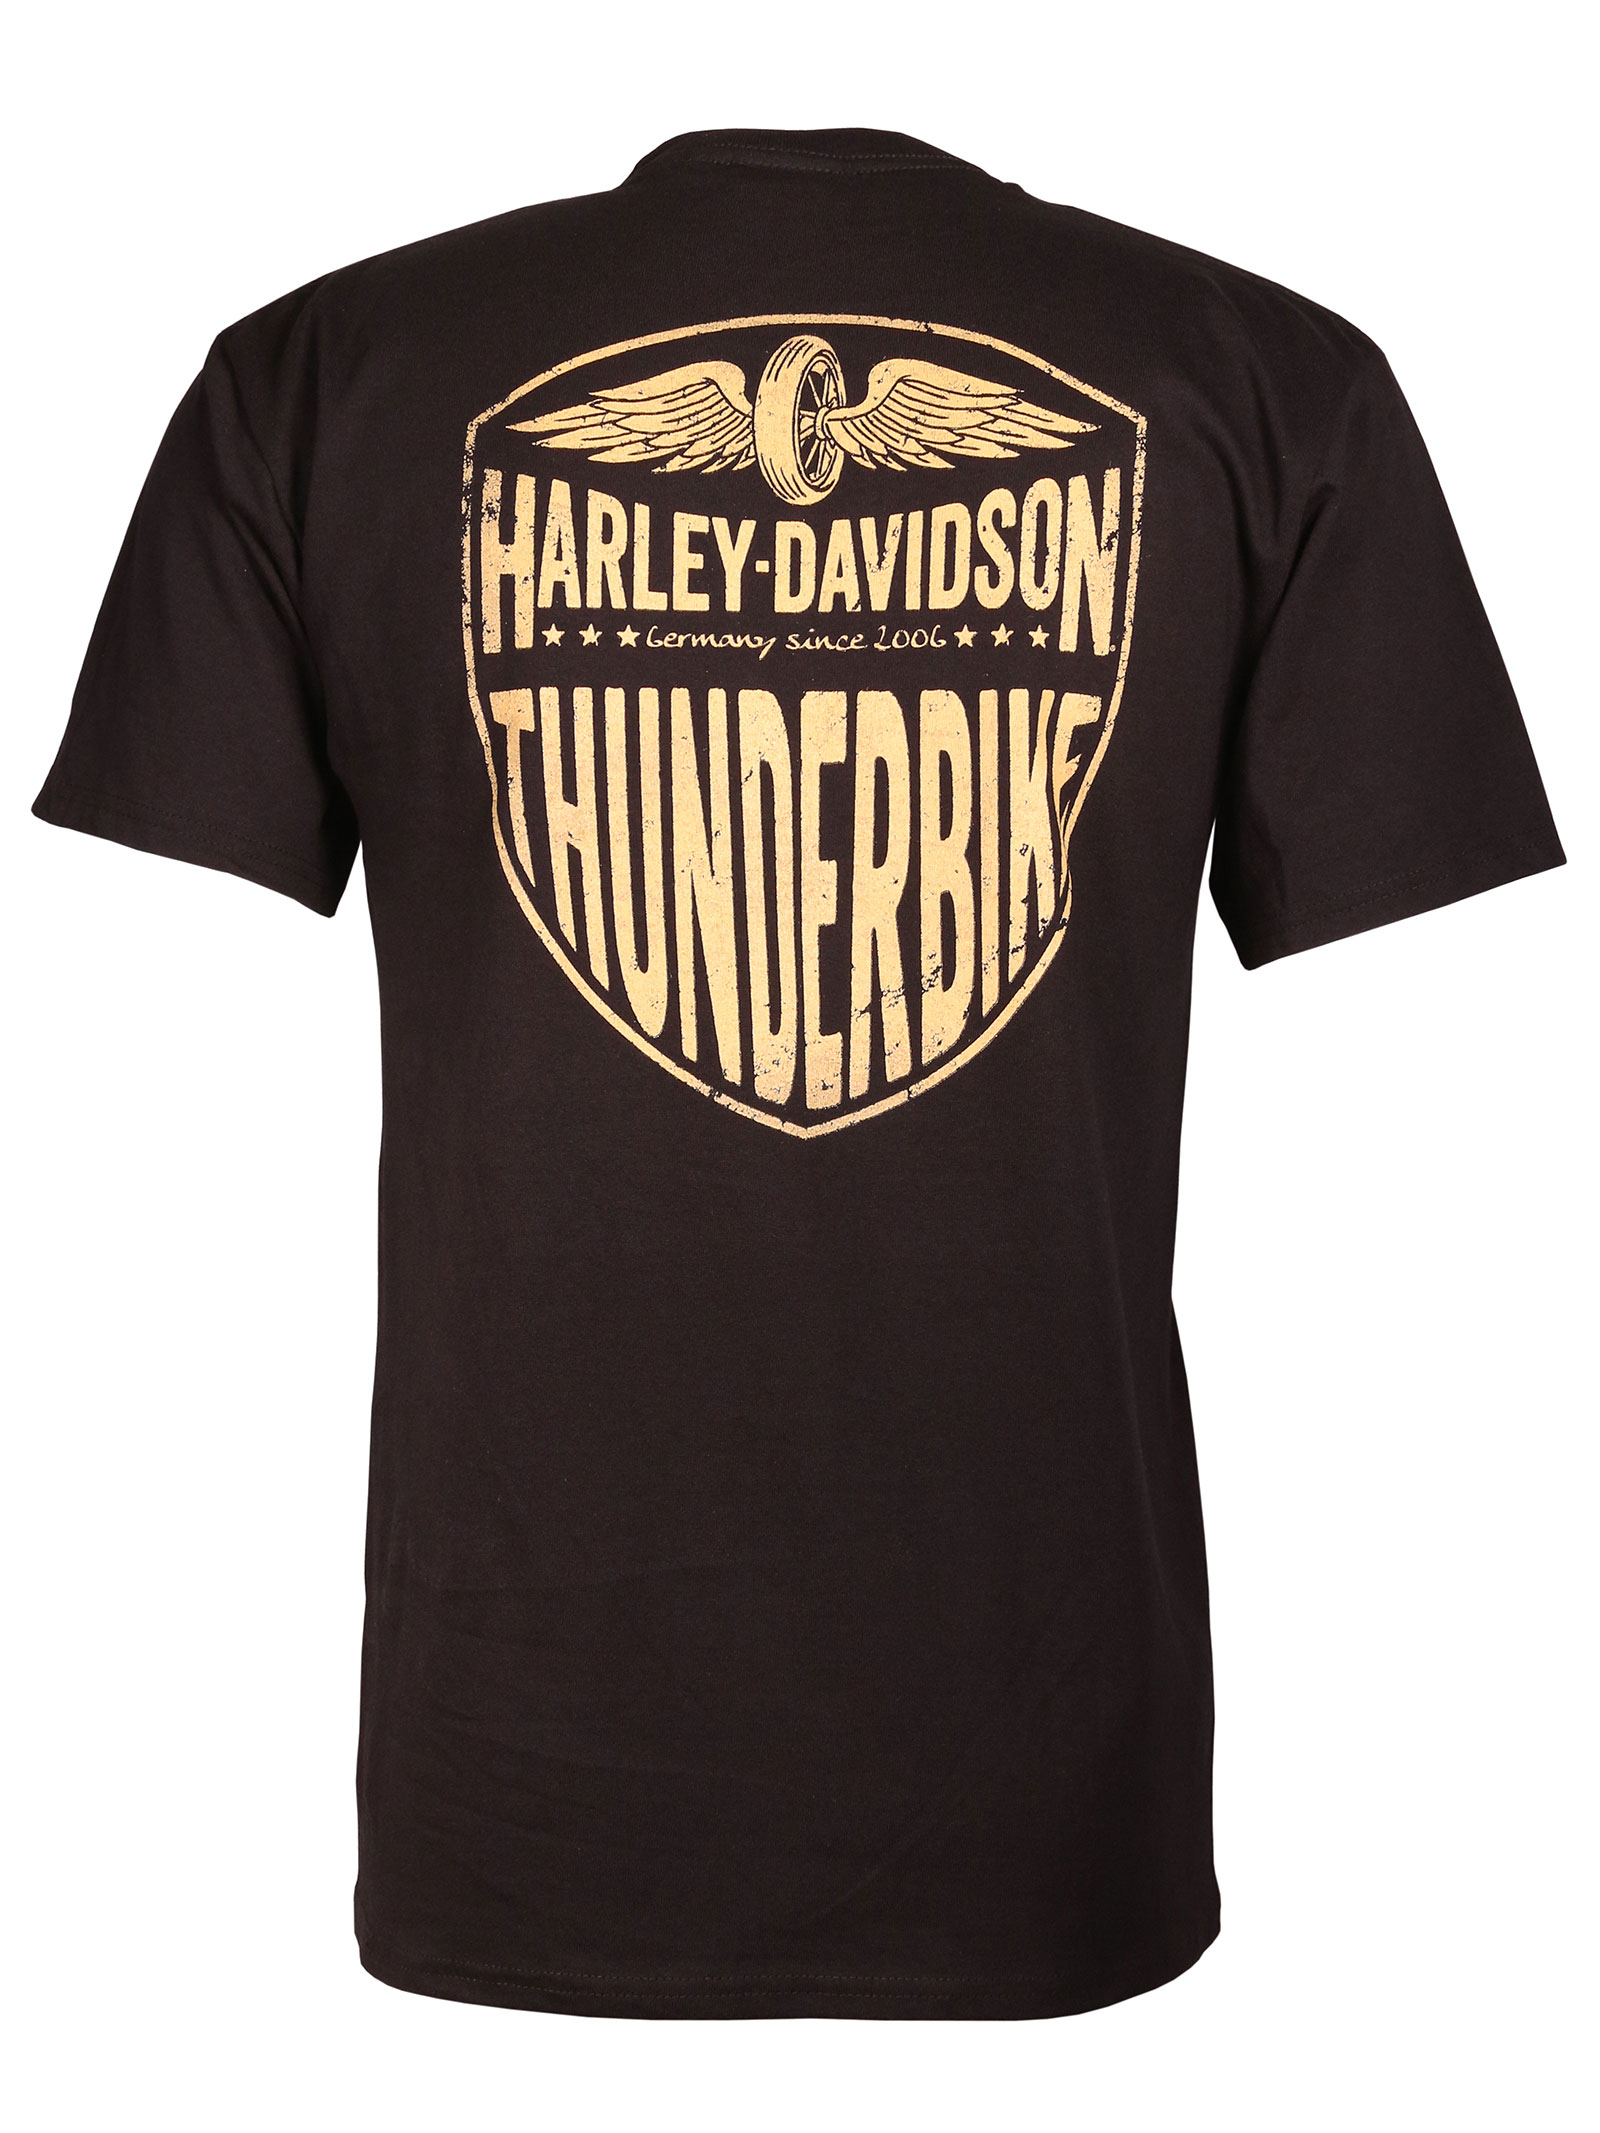 harley davidson t shirt raging ride at thunderbike shop. Black Bedroom Furniture Sets. Home Design Ideas